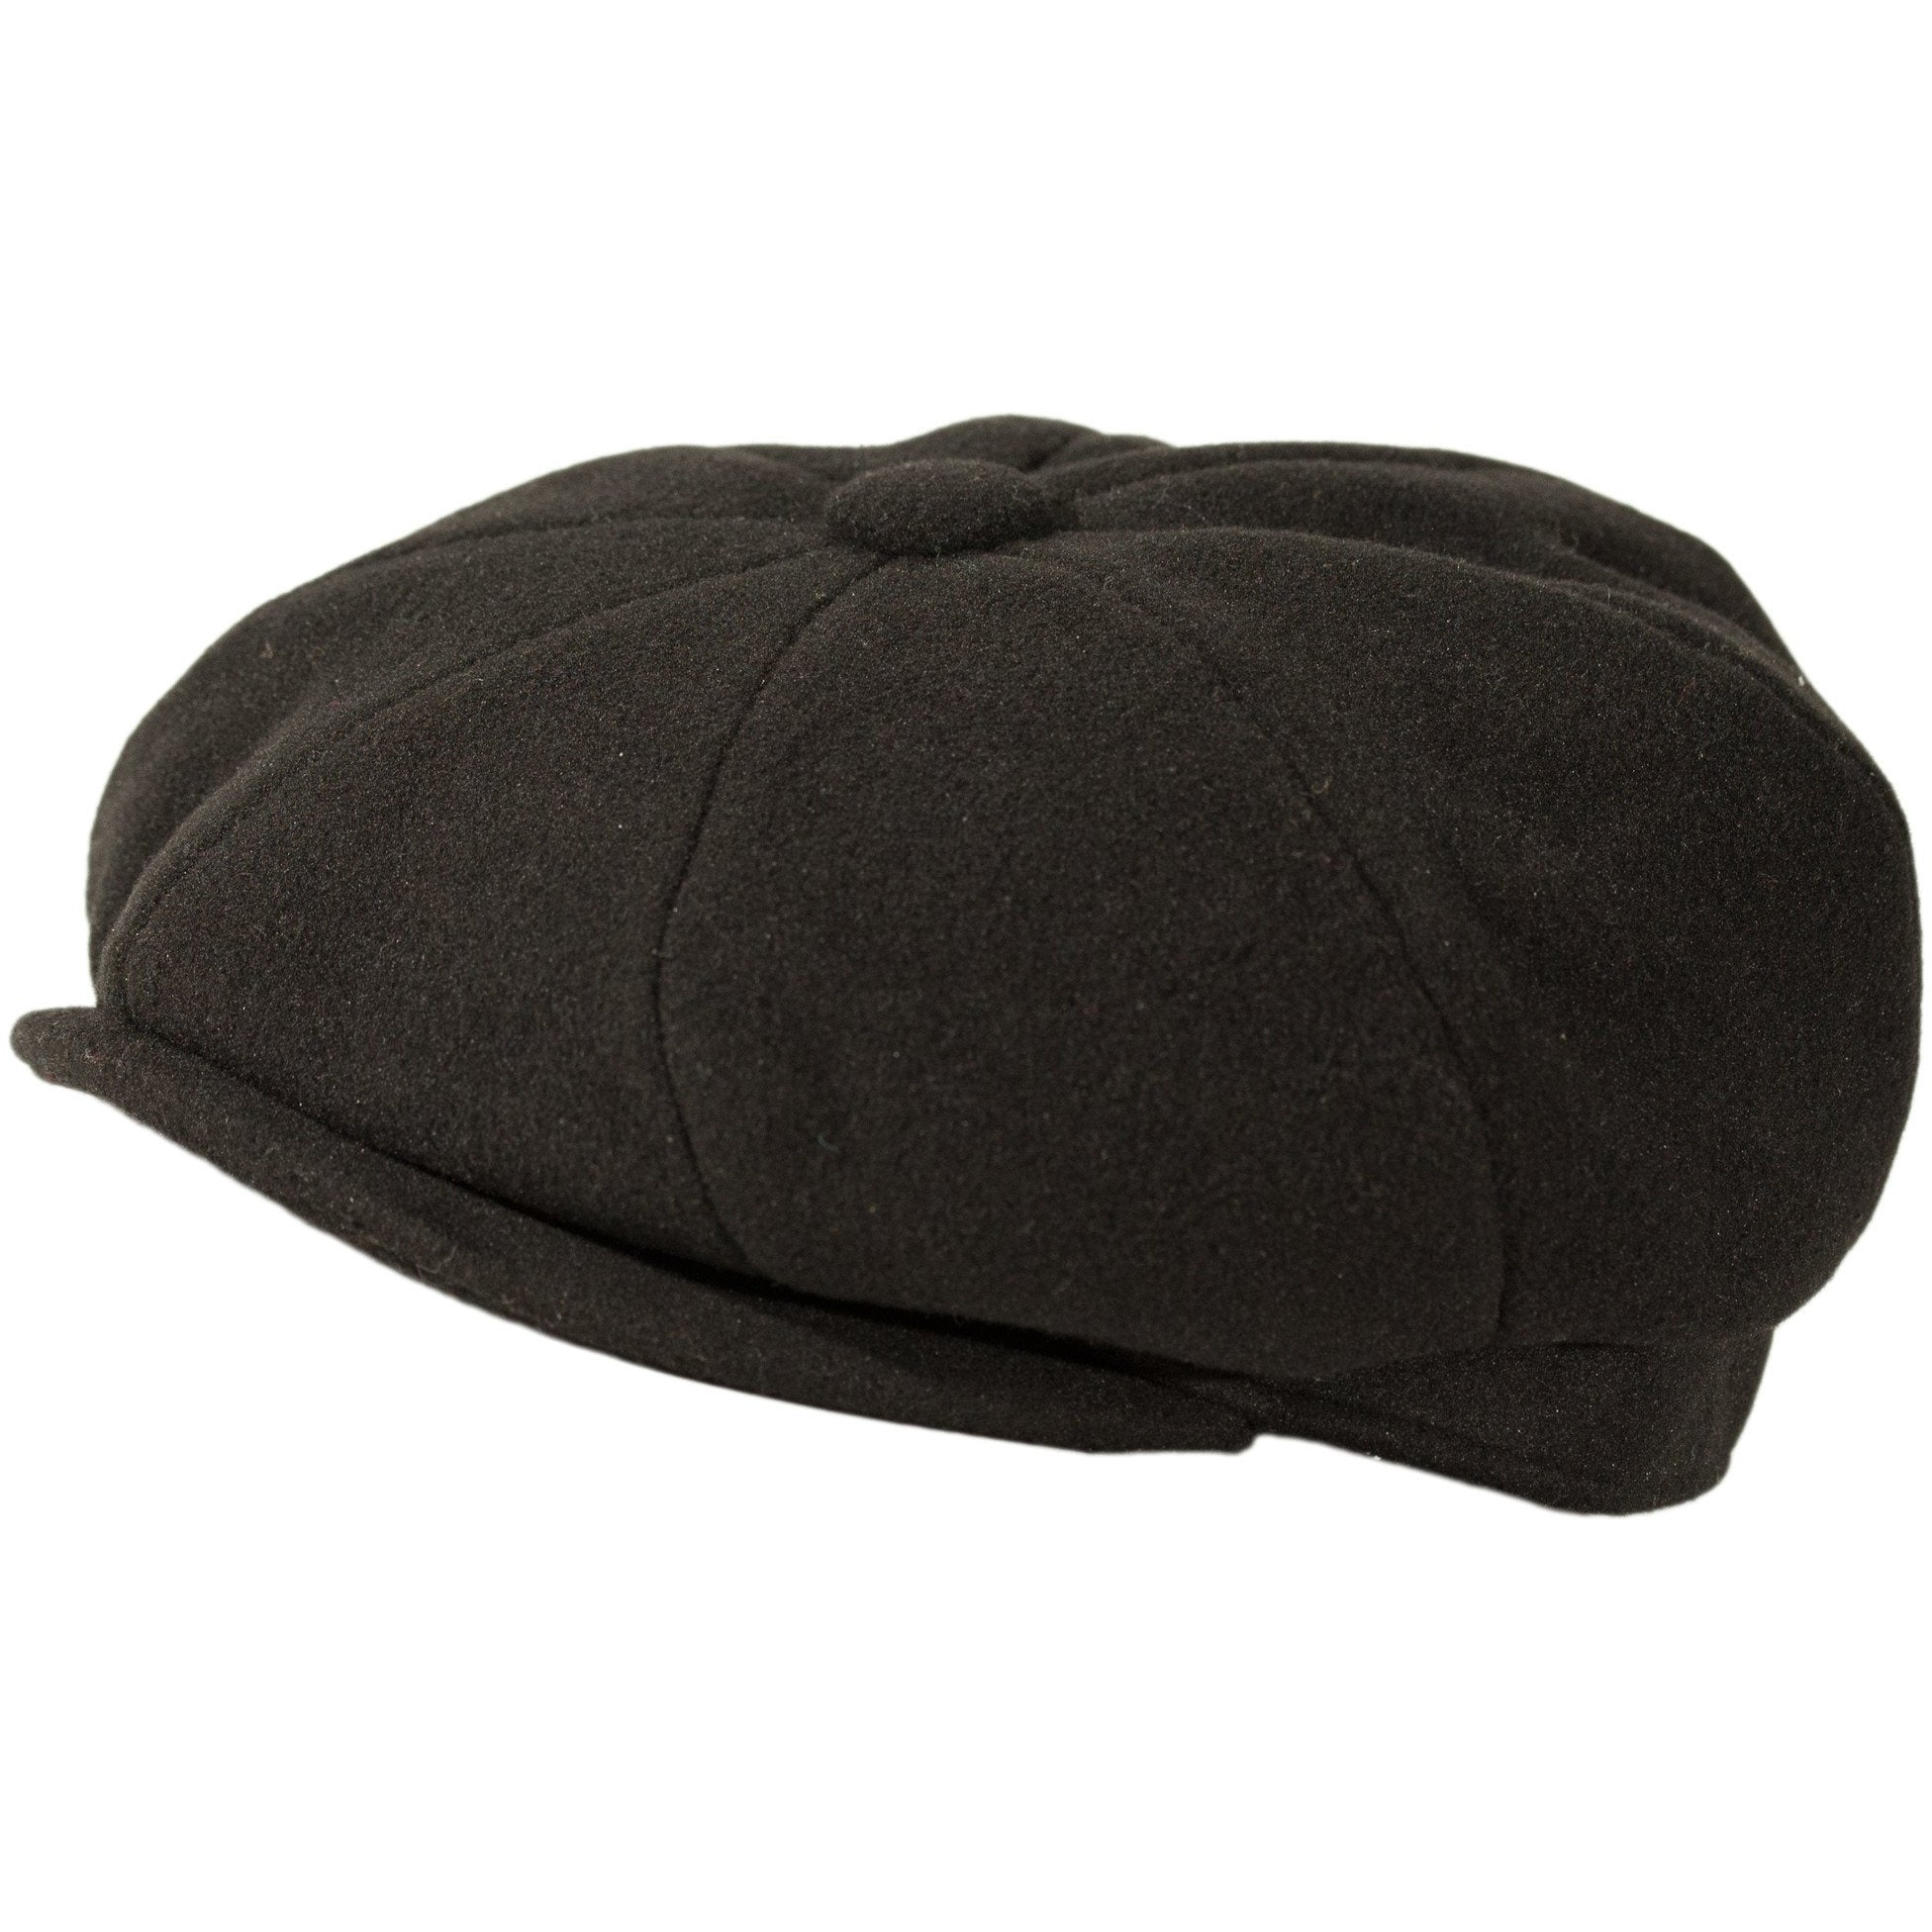 Ivy   Newsboy Caps – Levine Hat Co. 05827c08172